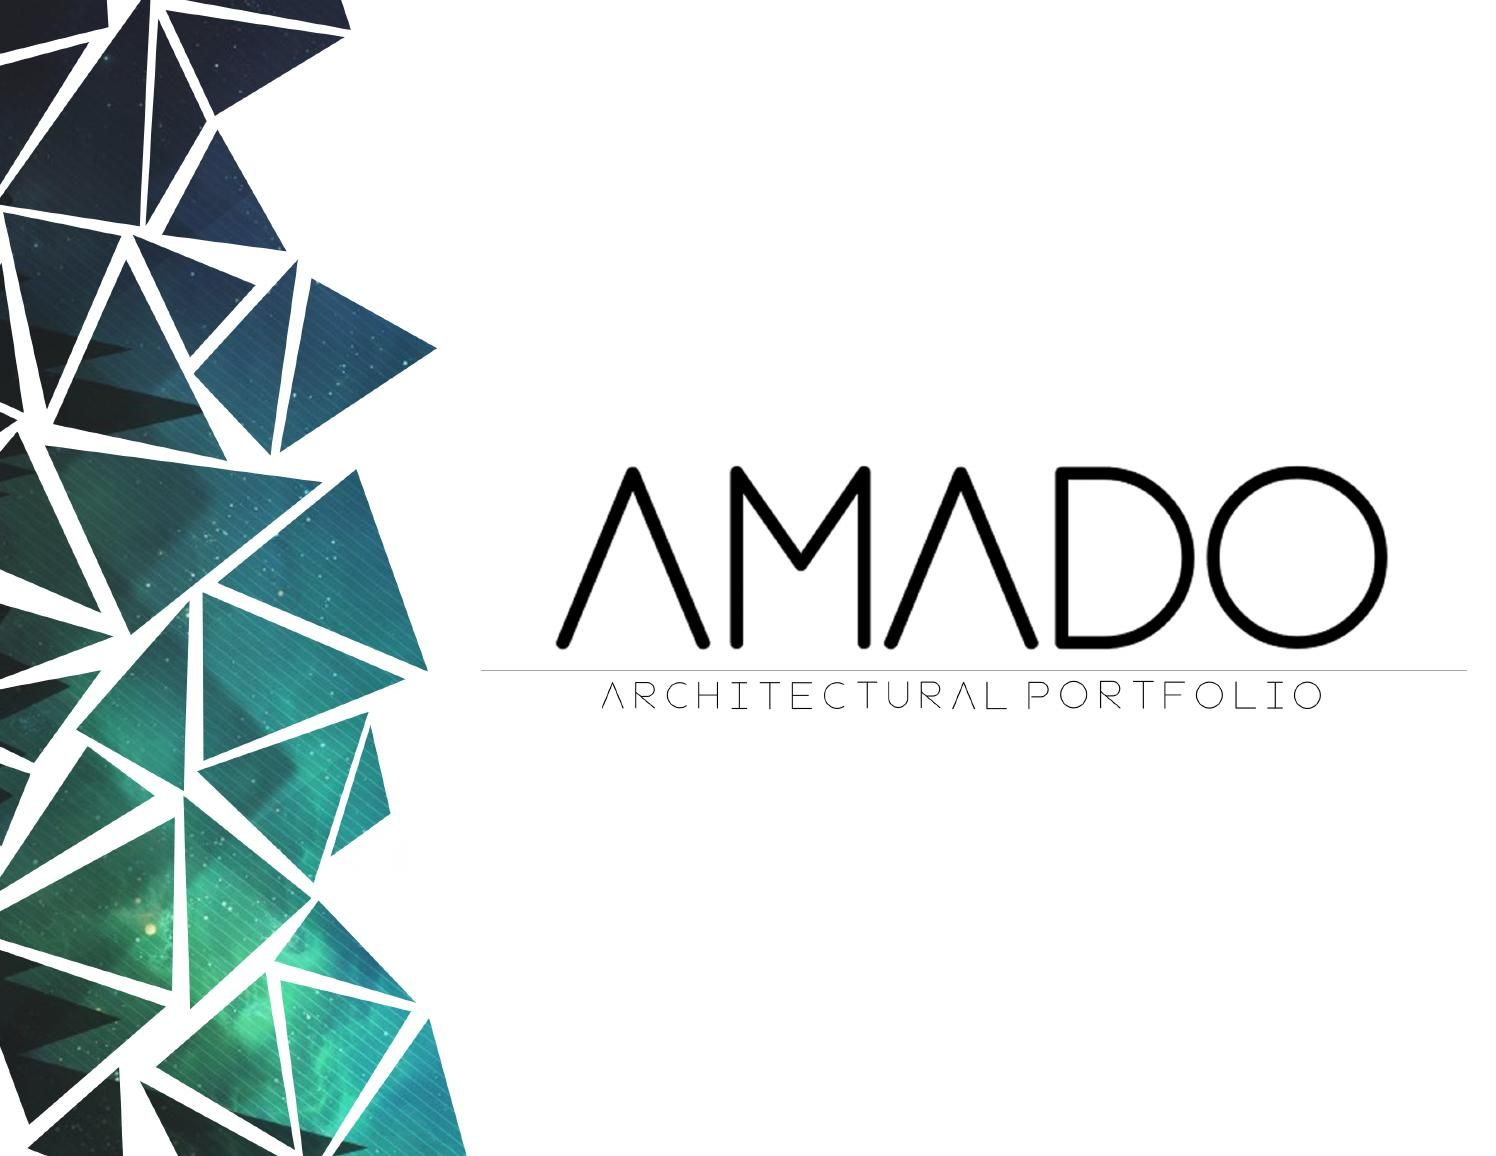 Book Cover Design Jobs : Amado ortiz architecture portfolio job hunting